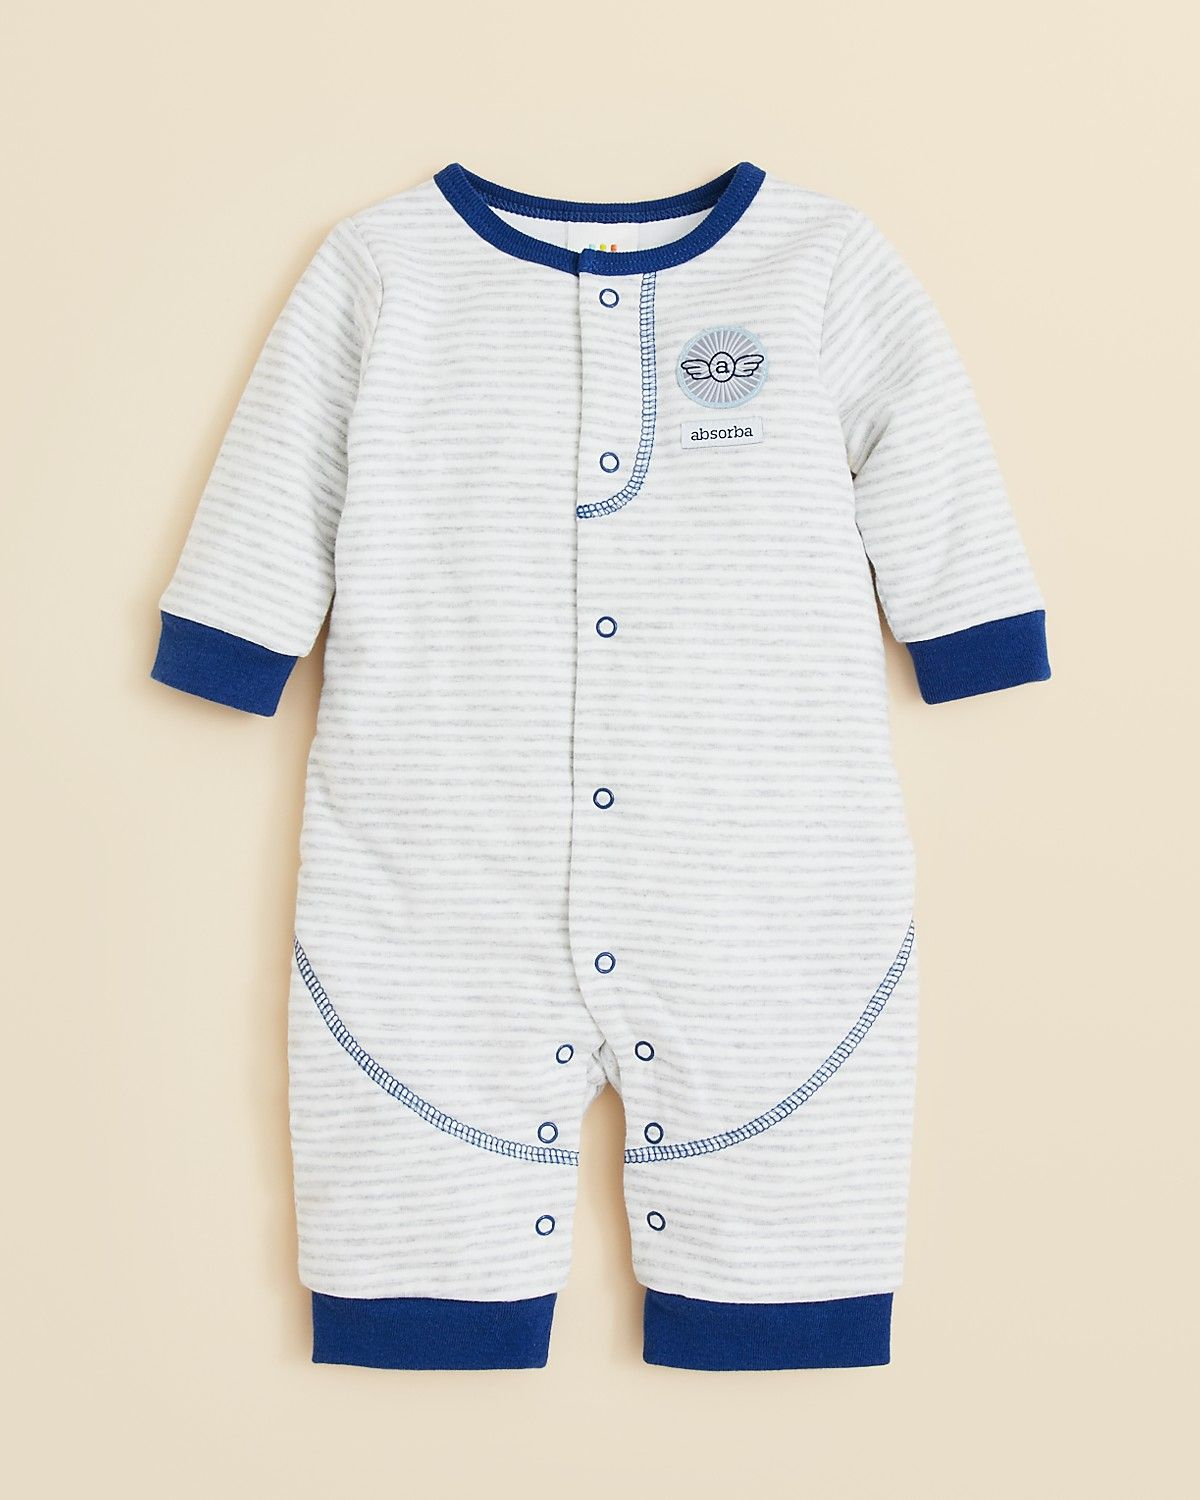 0c73263a5 Absorba Infant Boys' Stripe Coverall - Sizes 0-9 Months | Bloomingdale's